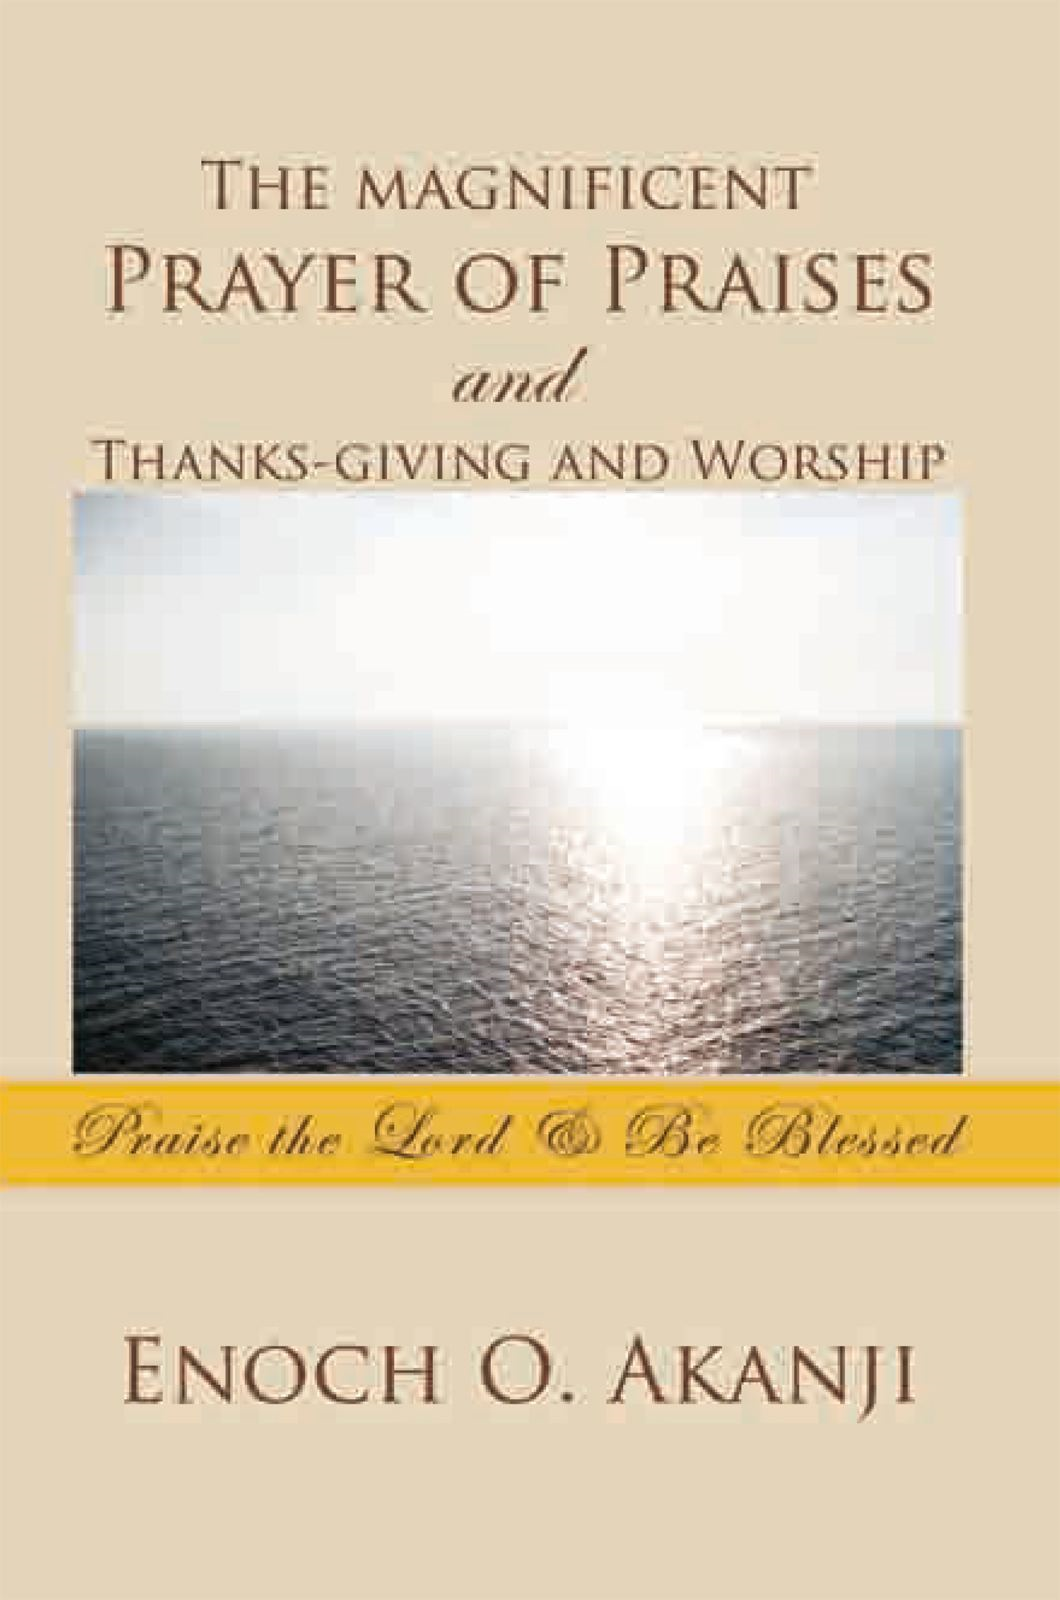 The magnificent Prayer of Praises and Thanks-giving and Worship